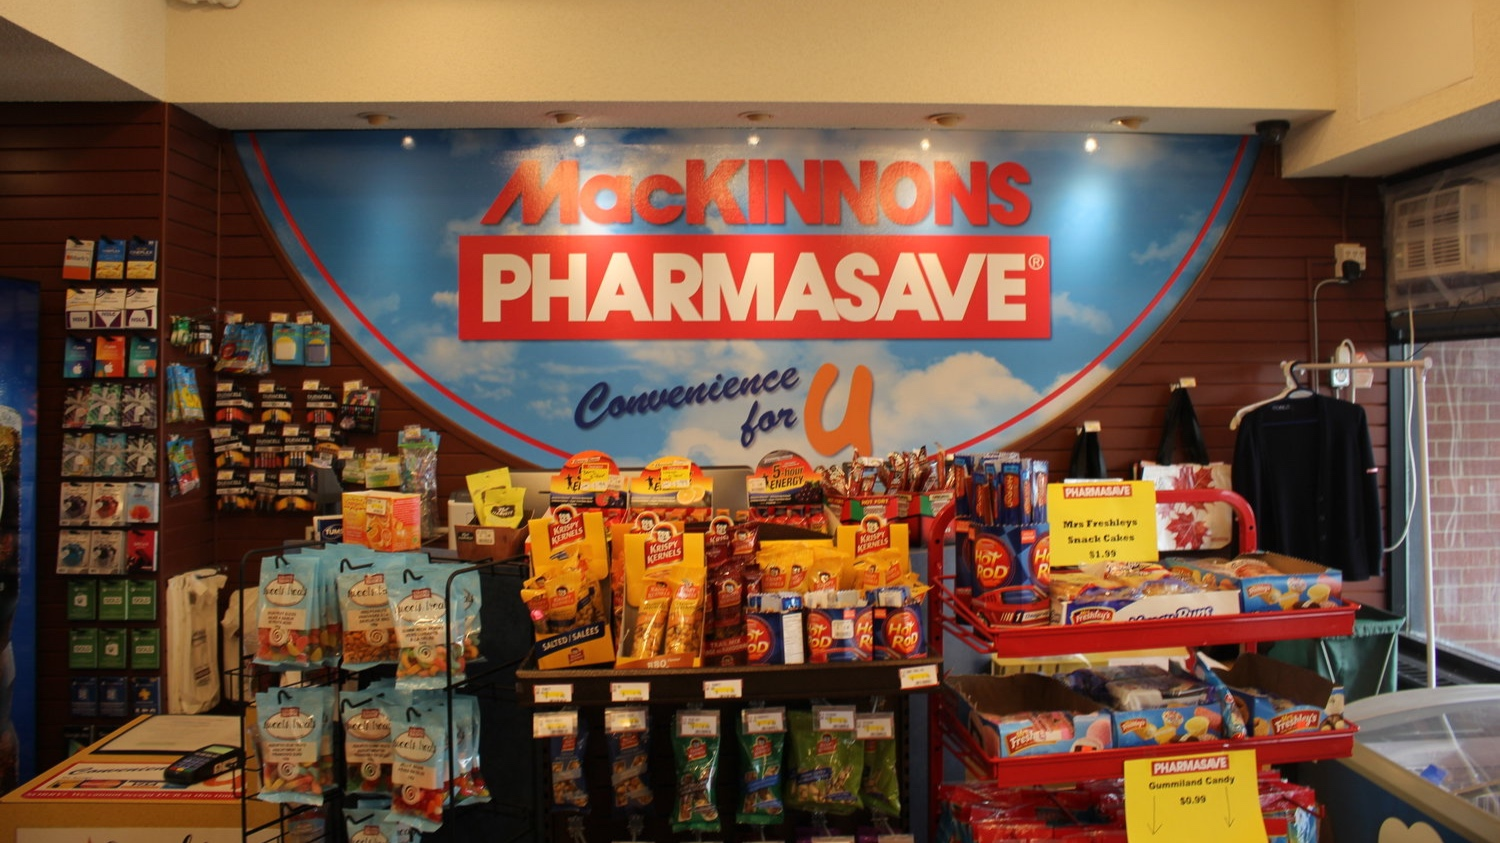 MacKinnons Pharmasave Convenience for U - From study snacks to shampoo, medicine and flu shots - we've got you covered! We're open daily, 9 am - 9pm, 2nd floor Bloomfield Centre. Don't forget to transfer your perceptions to our full service pharmacy for additional savings with your student heath card. Our pharmacy is open weekdays noon - 4pm, with a convenient prescription drop off box for after hours.